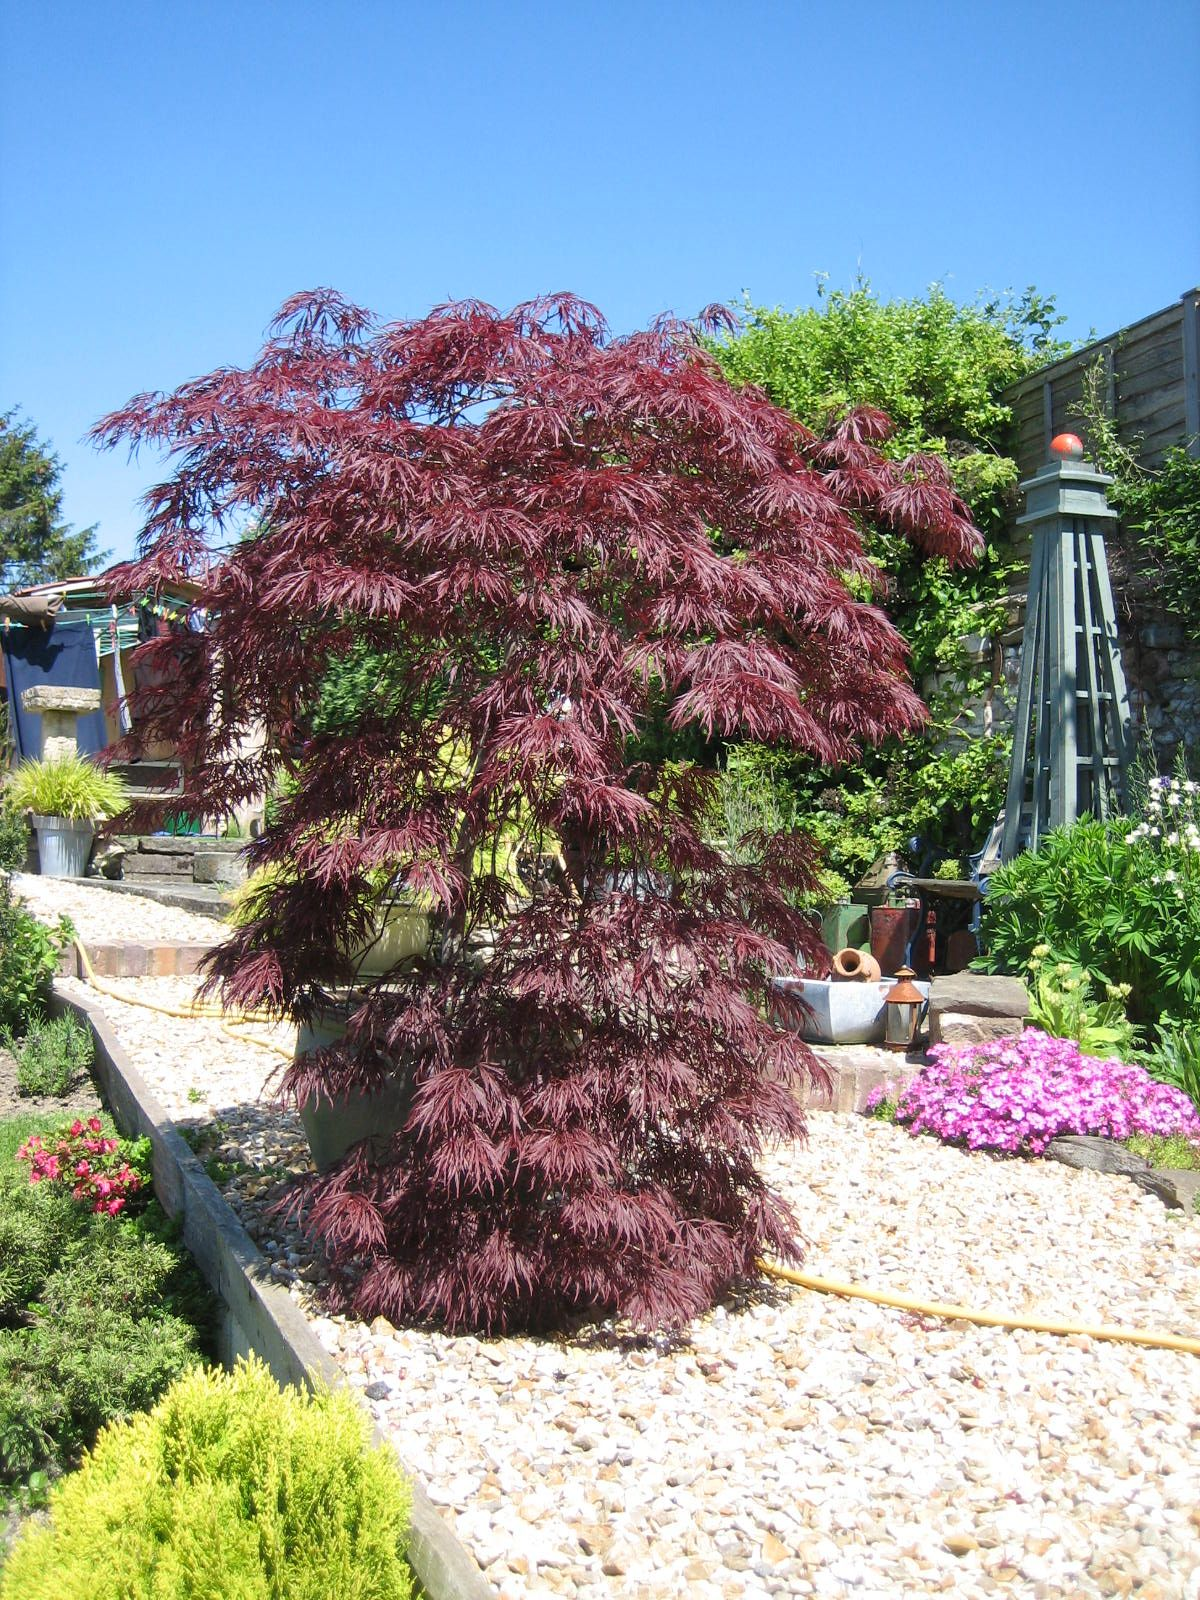 On of our lovely Acers.